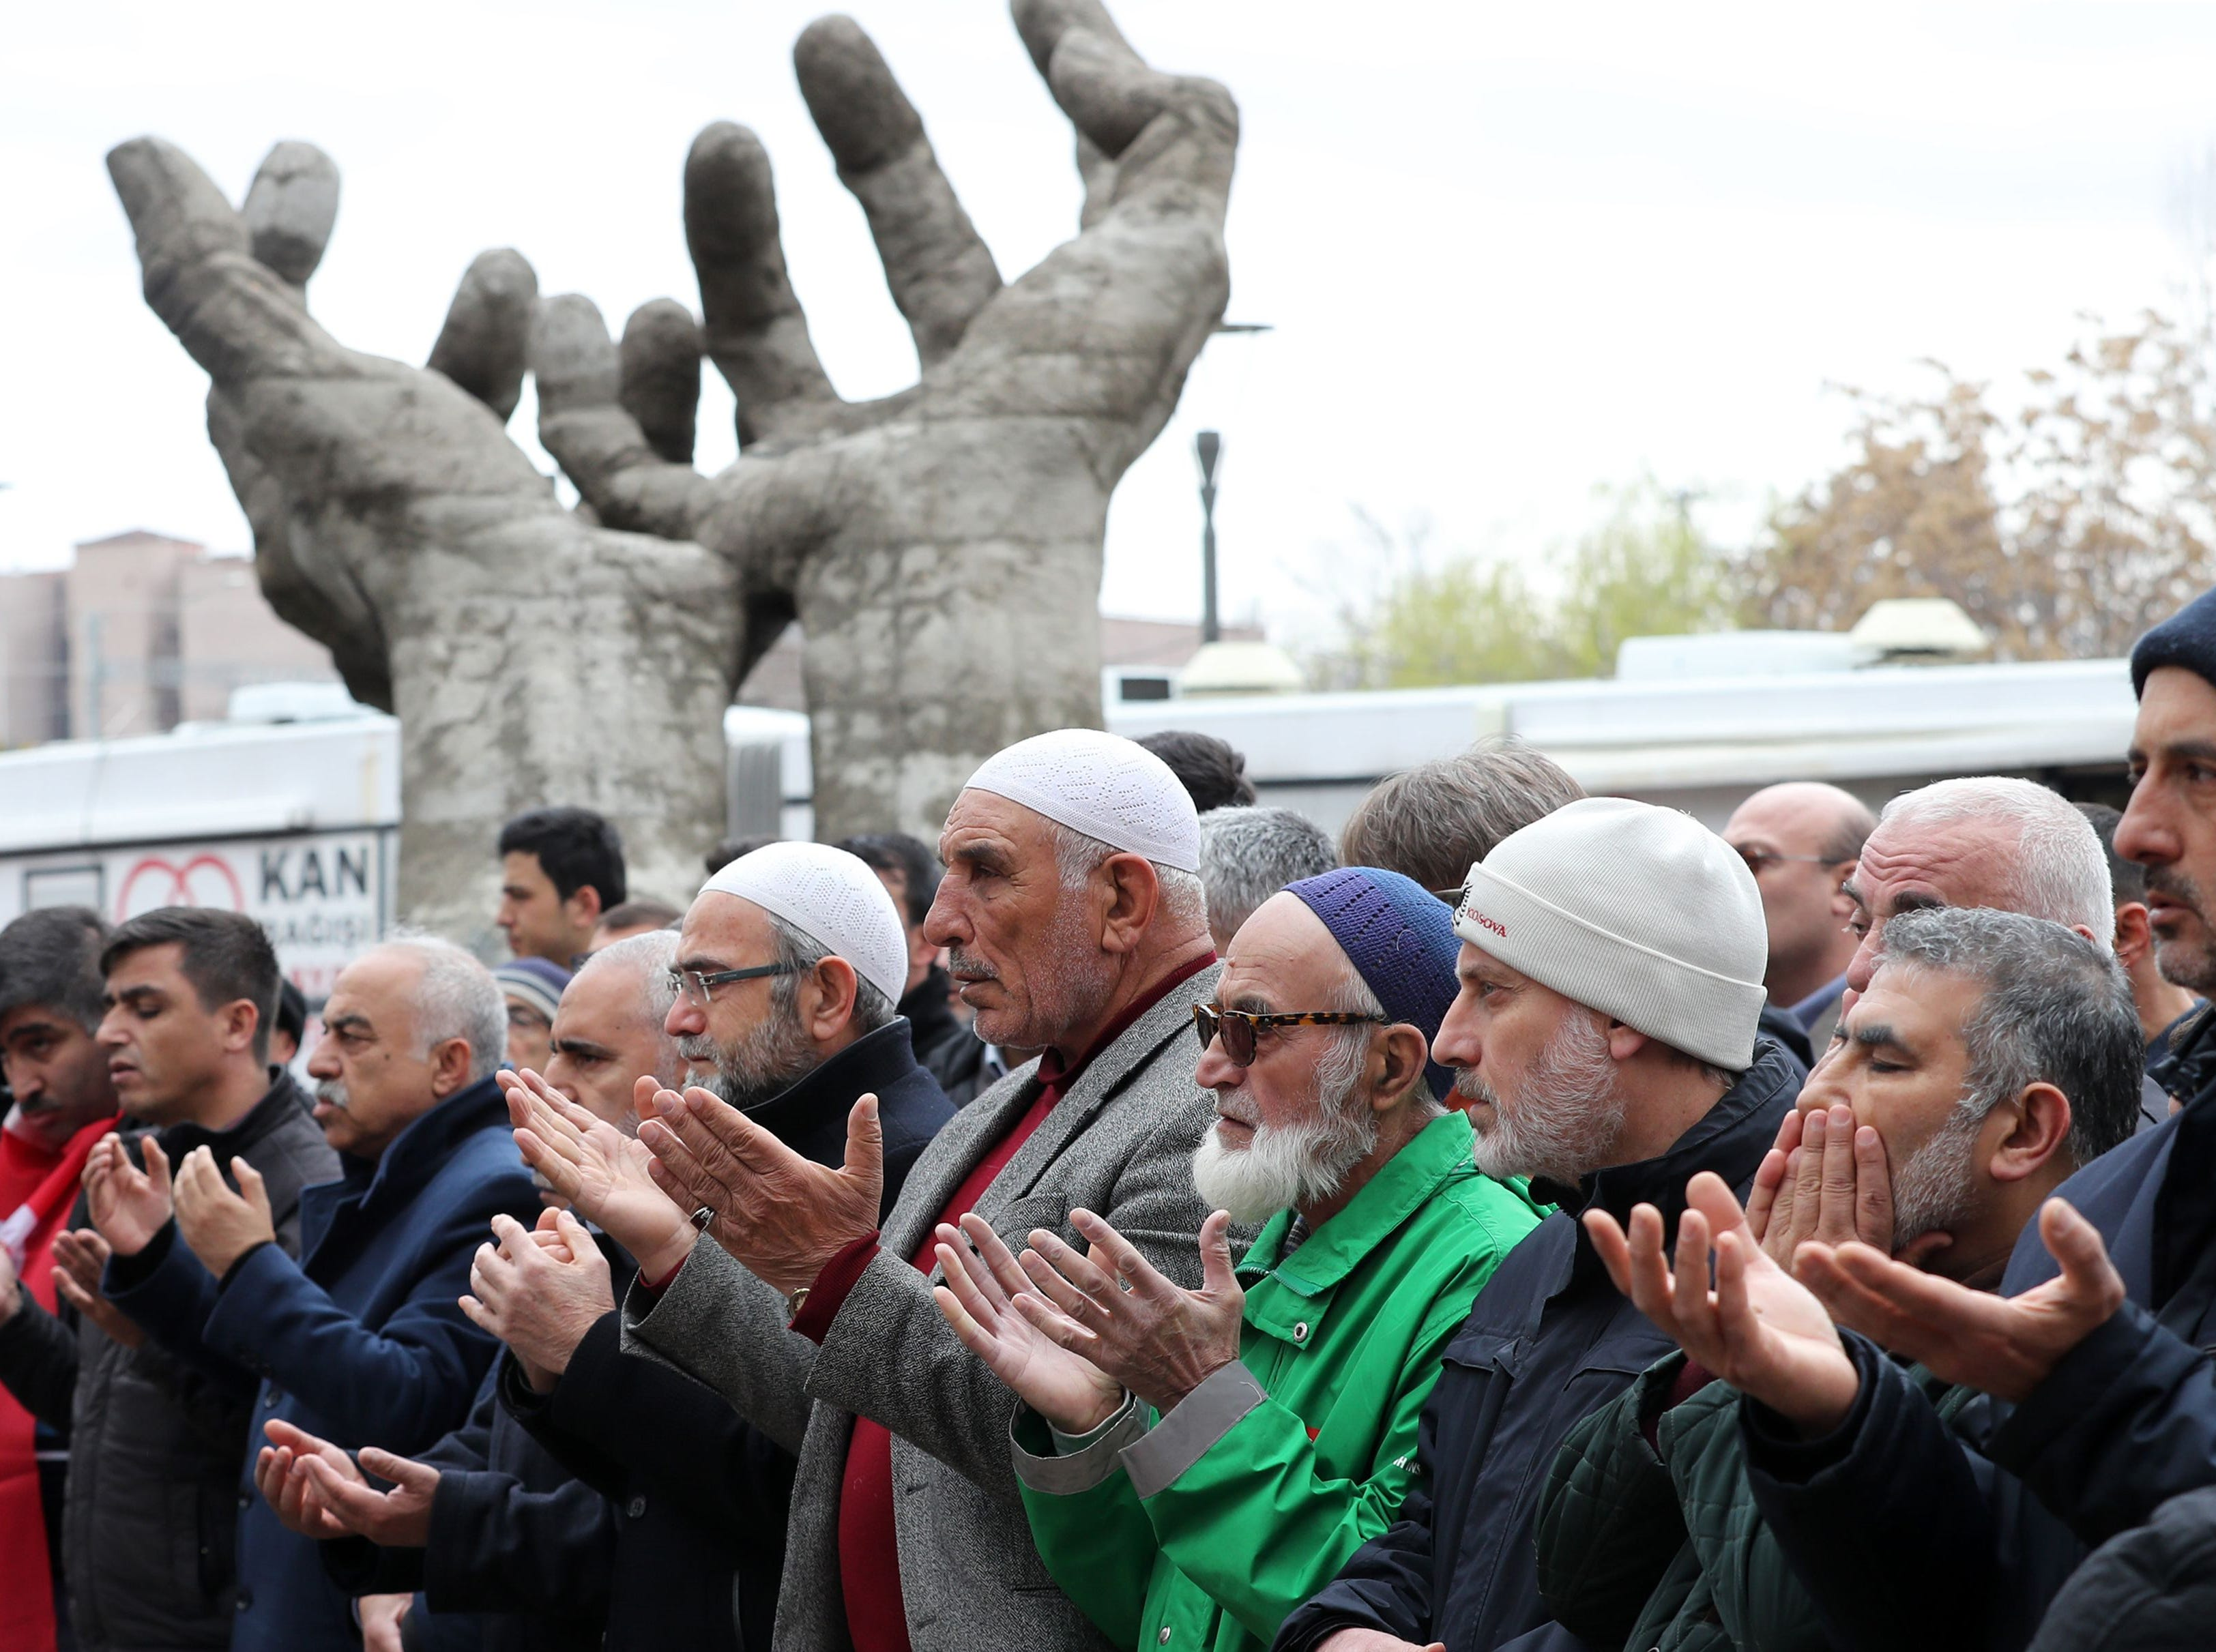 People perform a funeral prayer in absentia for those who lost their lives during twin terror attacks in New Zealand mosques, on March 16, 2019 in Ankara, Turkey.